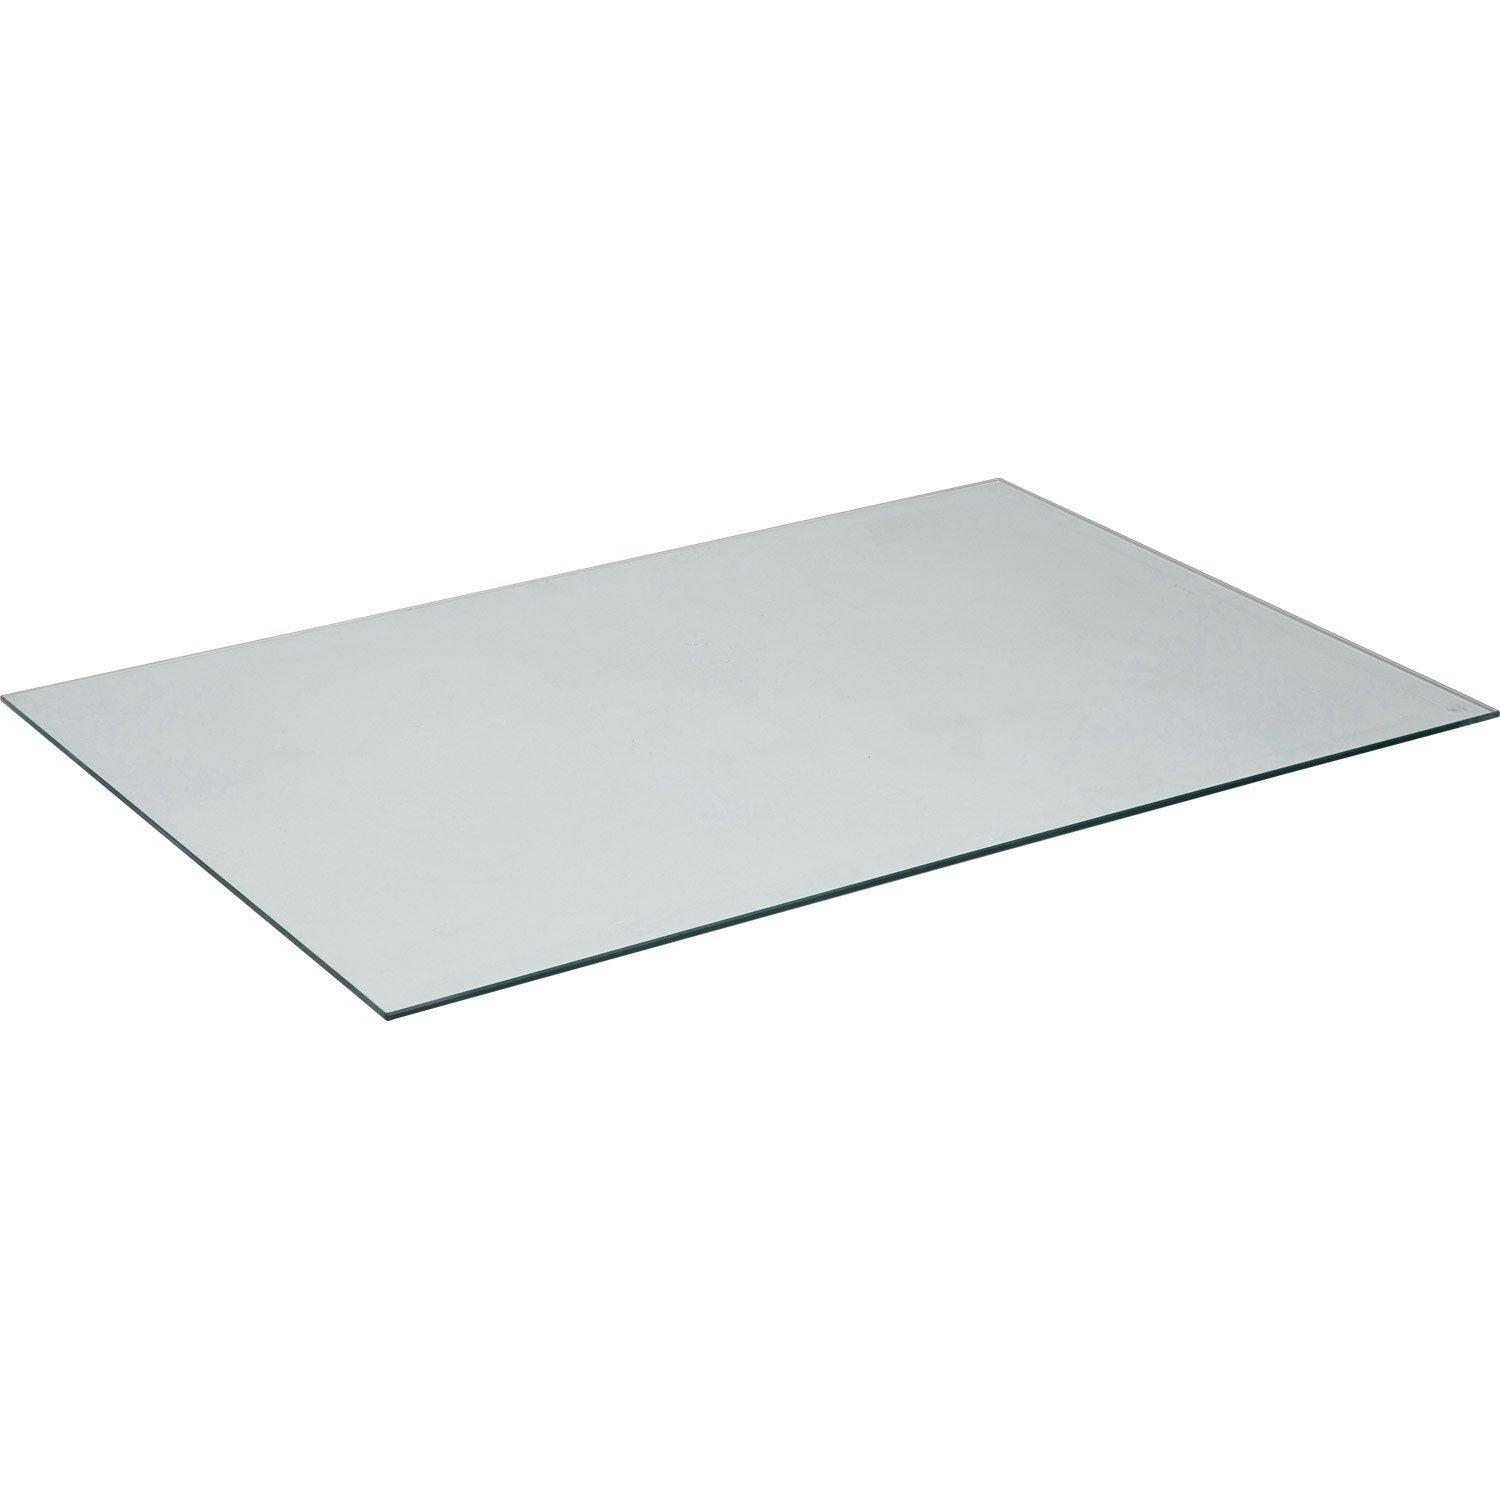 plateau de table verre l140 x l72 cm x ep8 mm leroy merlin - Table Plateau En Verre